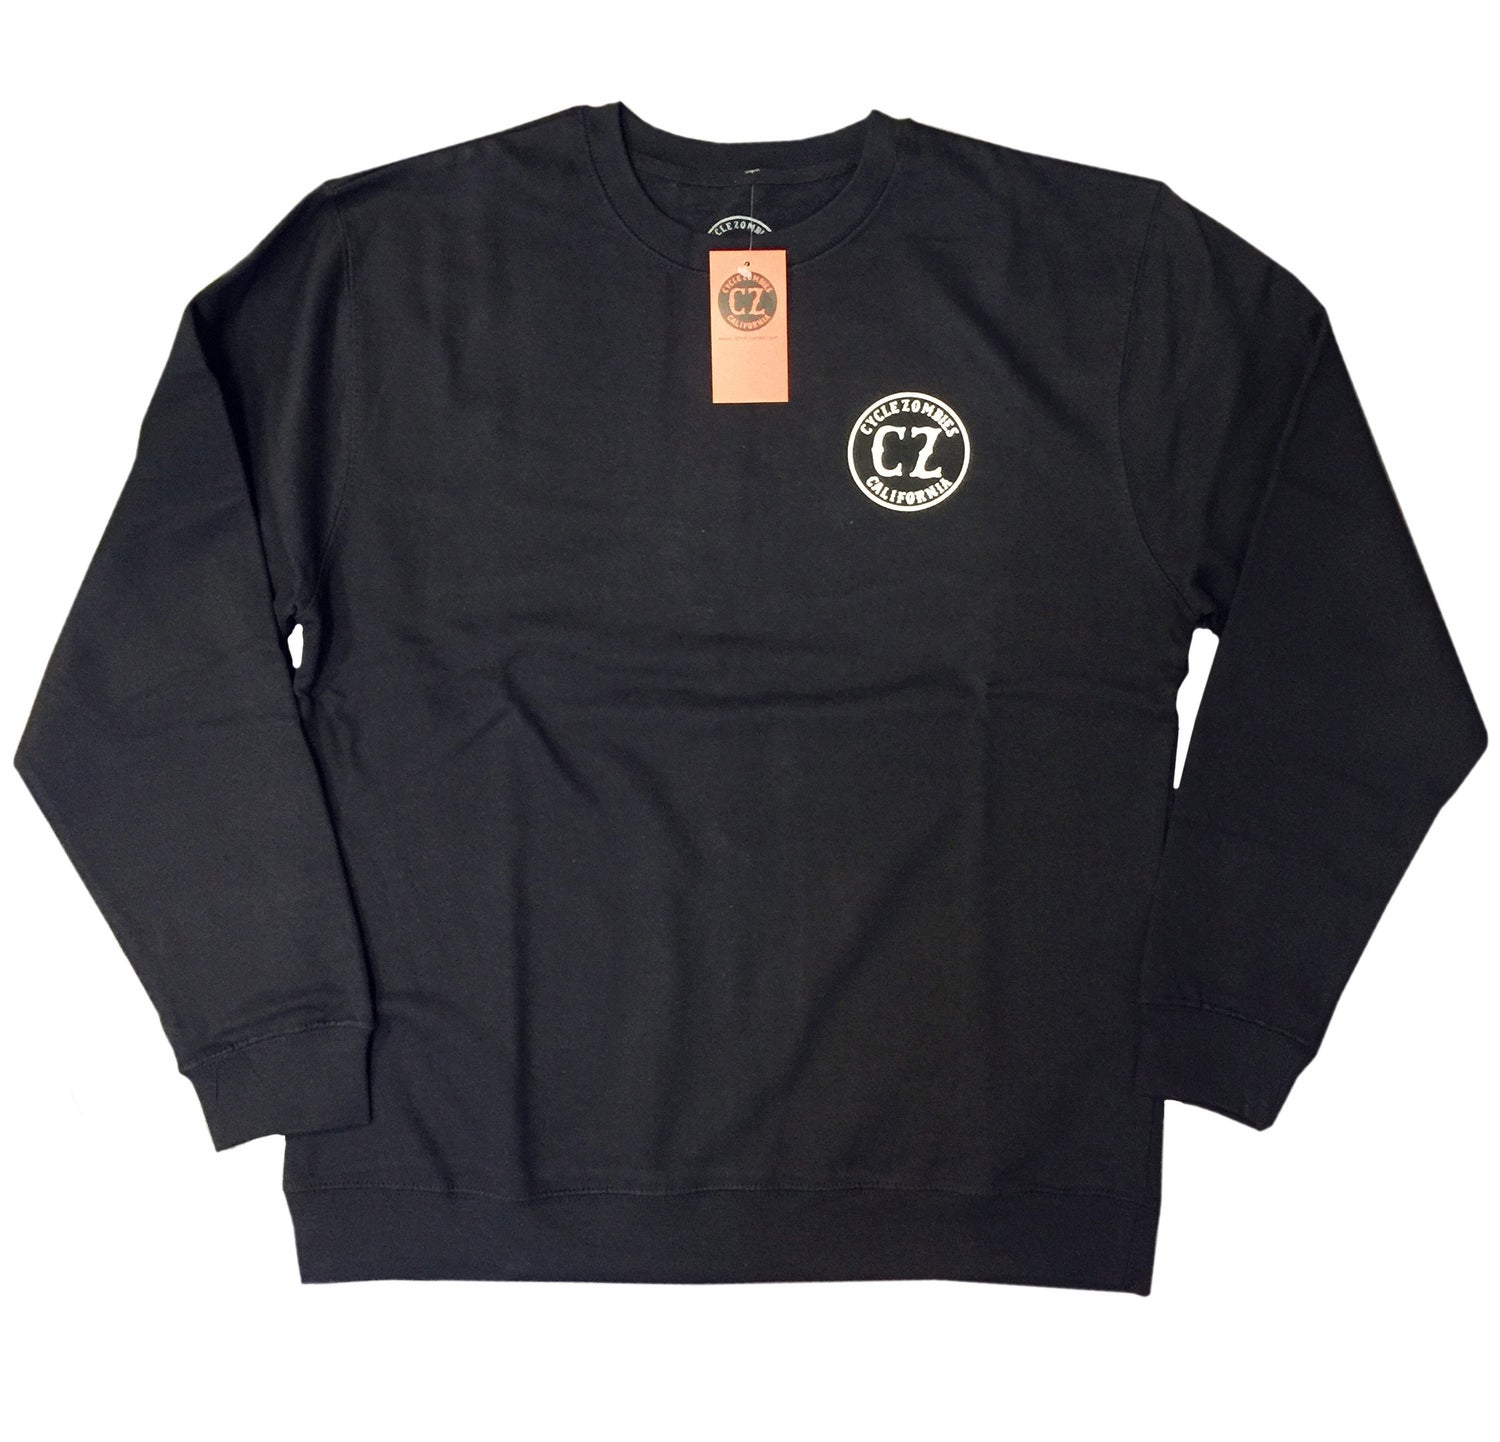 Image of Cycle Zombies crew neck sweater - Black